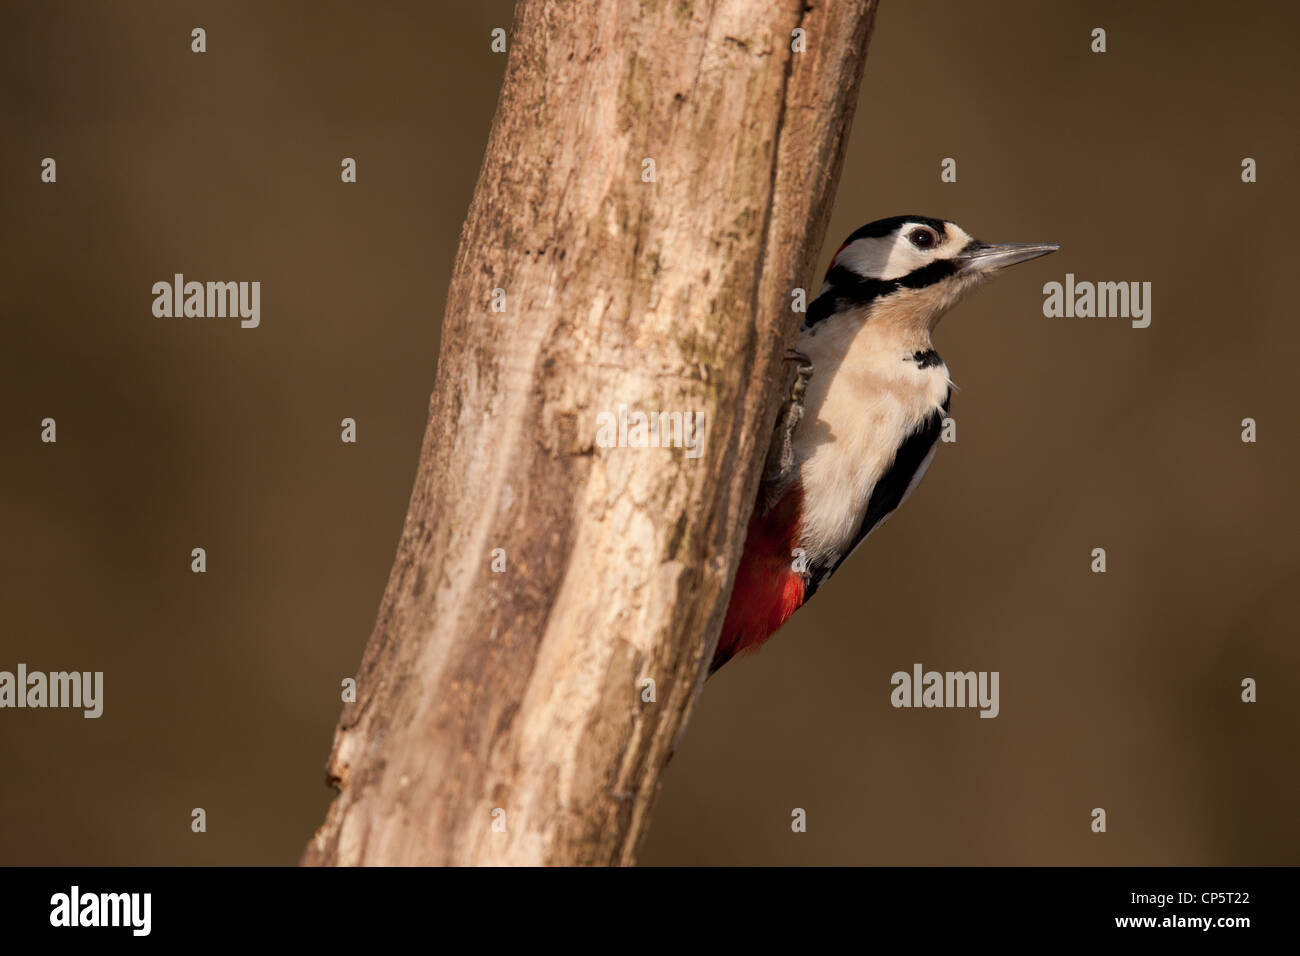 Great Spotted Woodpecker, Dendrocopos major, woodland bird from Europe, parks, wood, trees, bird, leaves, leaf, - Stock Image